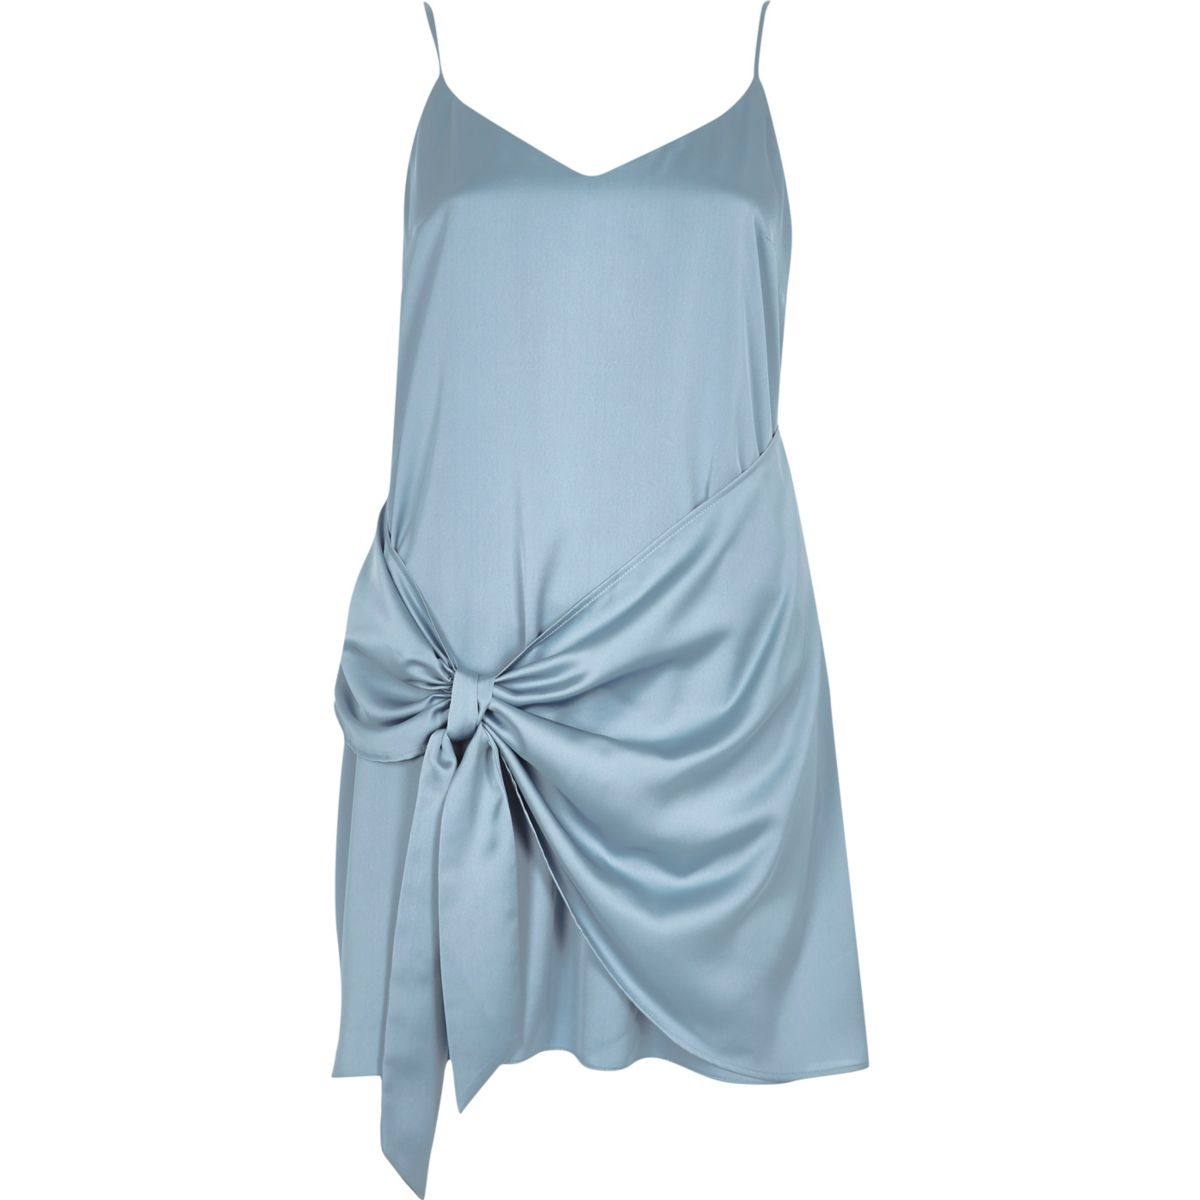 Petite blue tie front cami slip dress